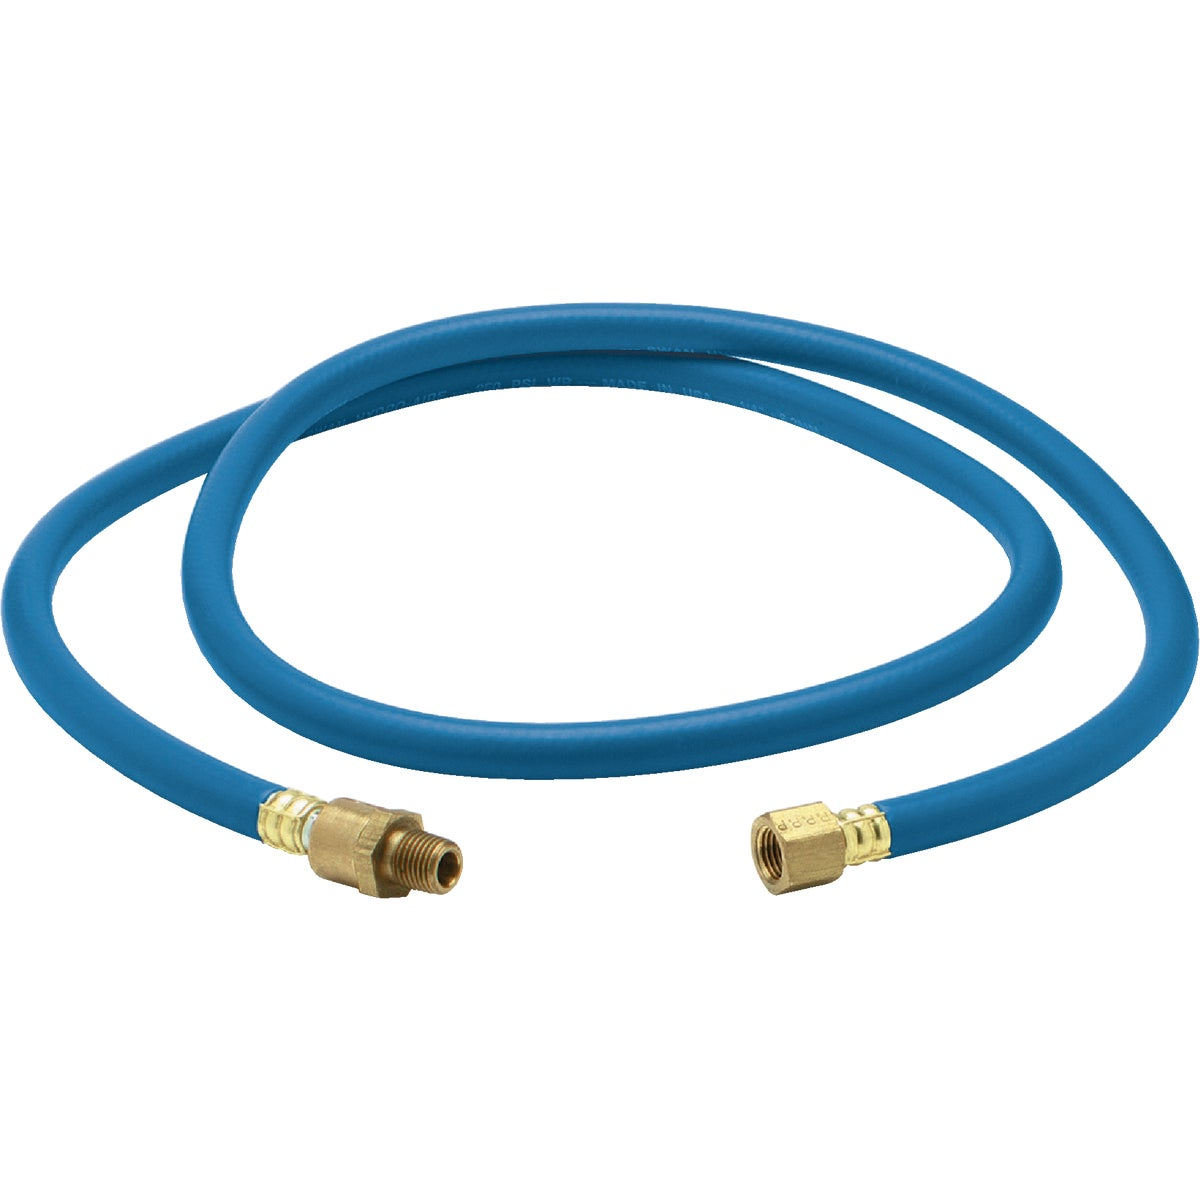 "1/4""X2' PCV AIR HOSE - 25-24-RET by Plews  Lubrimatic"